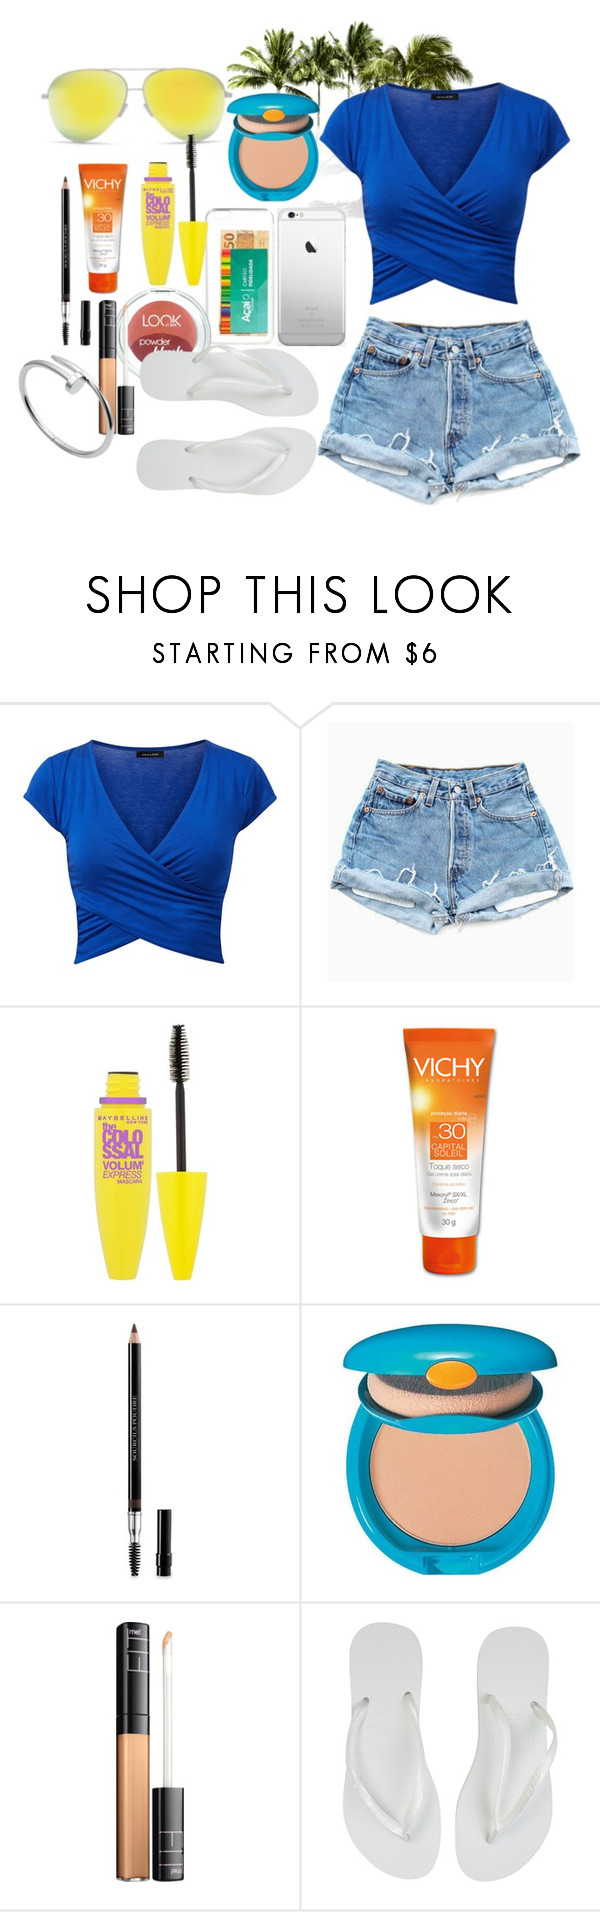 """Bar on the beach with friends ☀️"" by nathfreire ❤ liked on Polyvore featuring Maybelline, Christian Dior, Shiseido, Havaianas and Cartier"